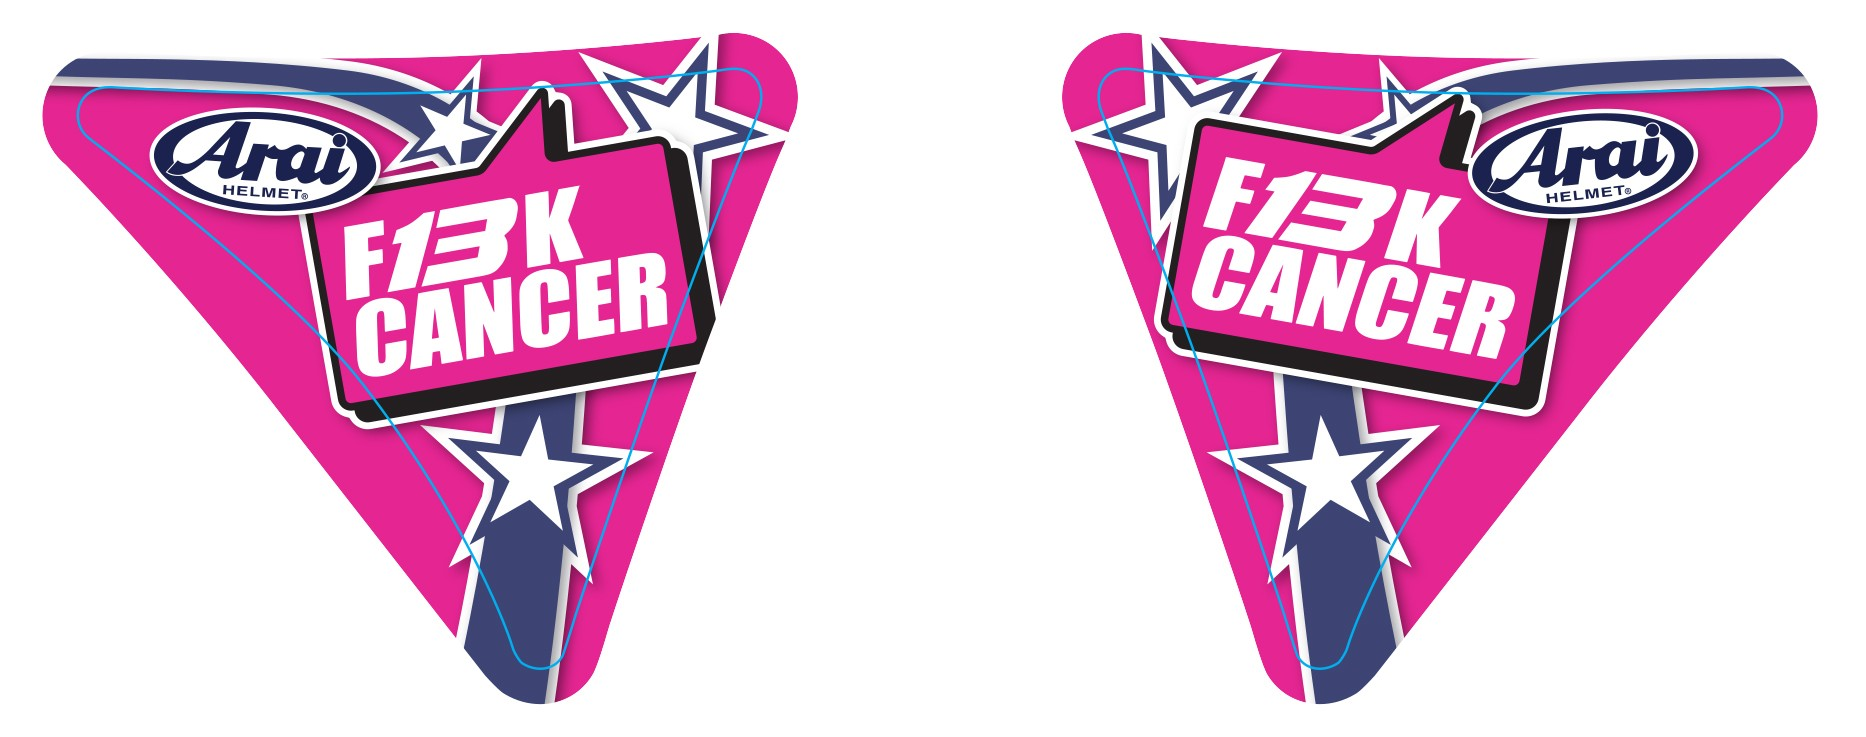 F13K Cancer Charity Visor Sticker